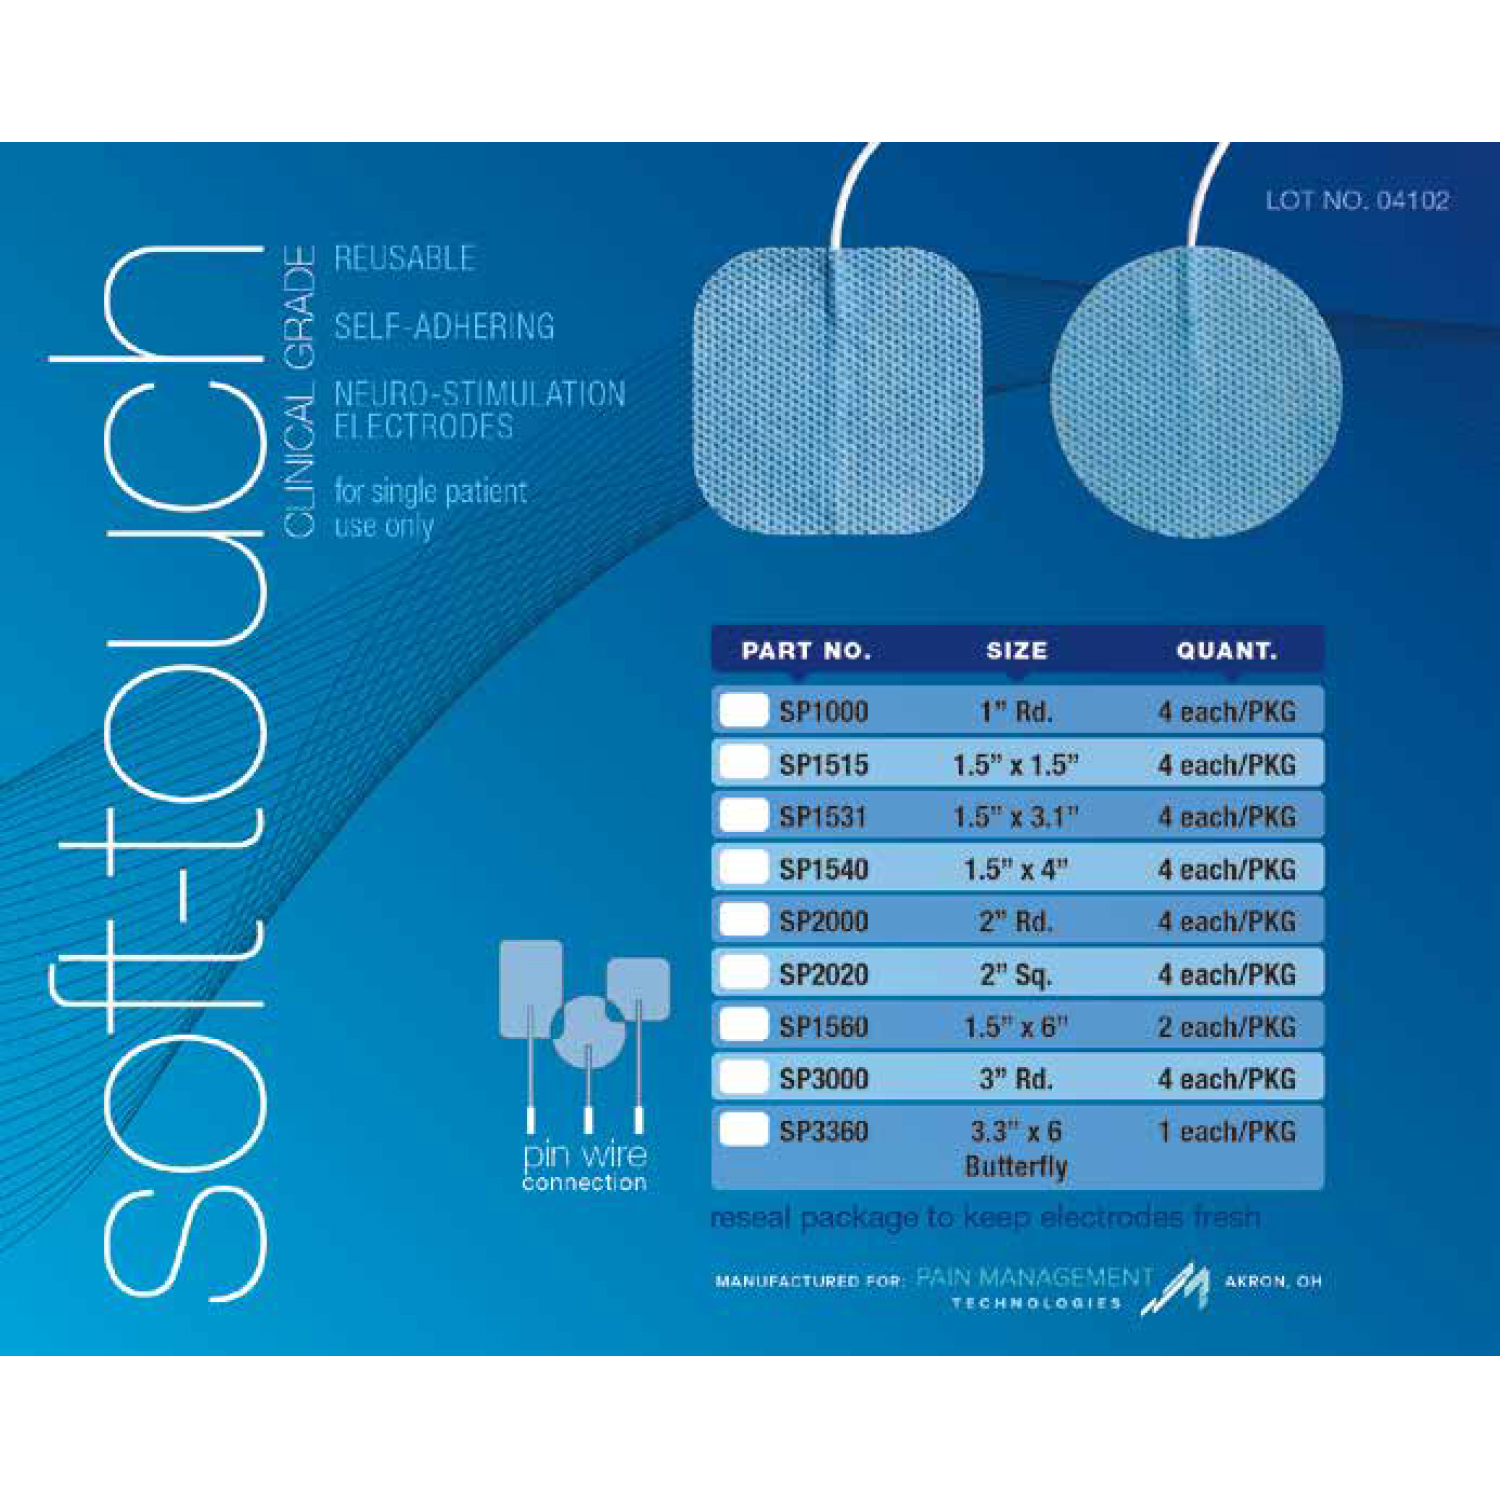 Soft-Touch Clinical Grade Electrodes